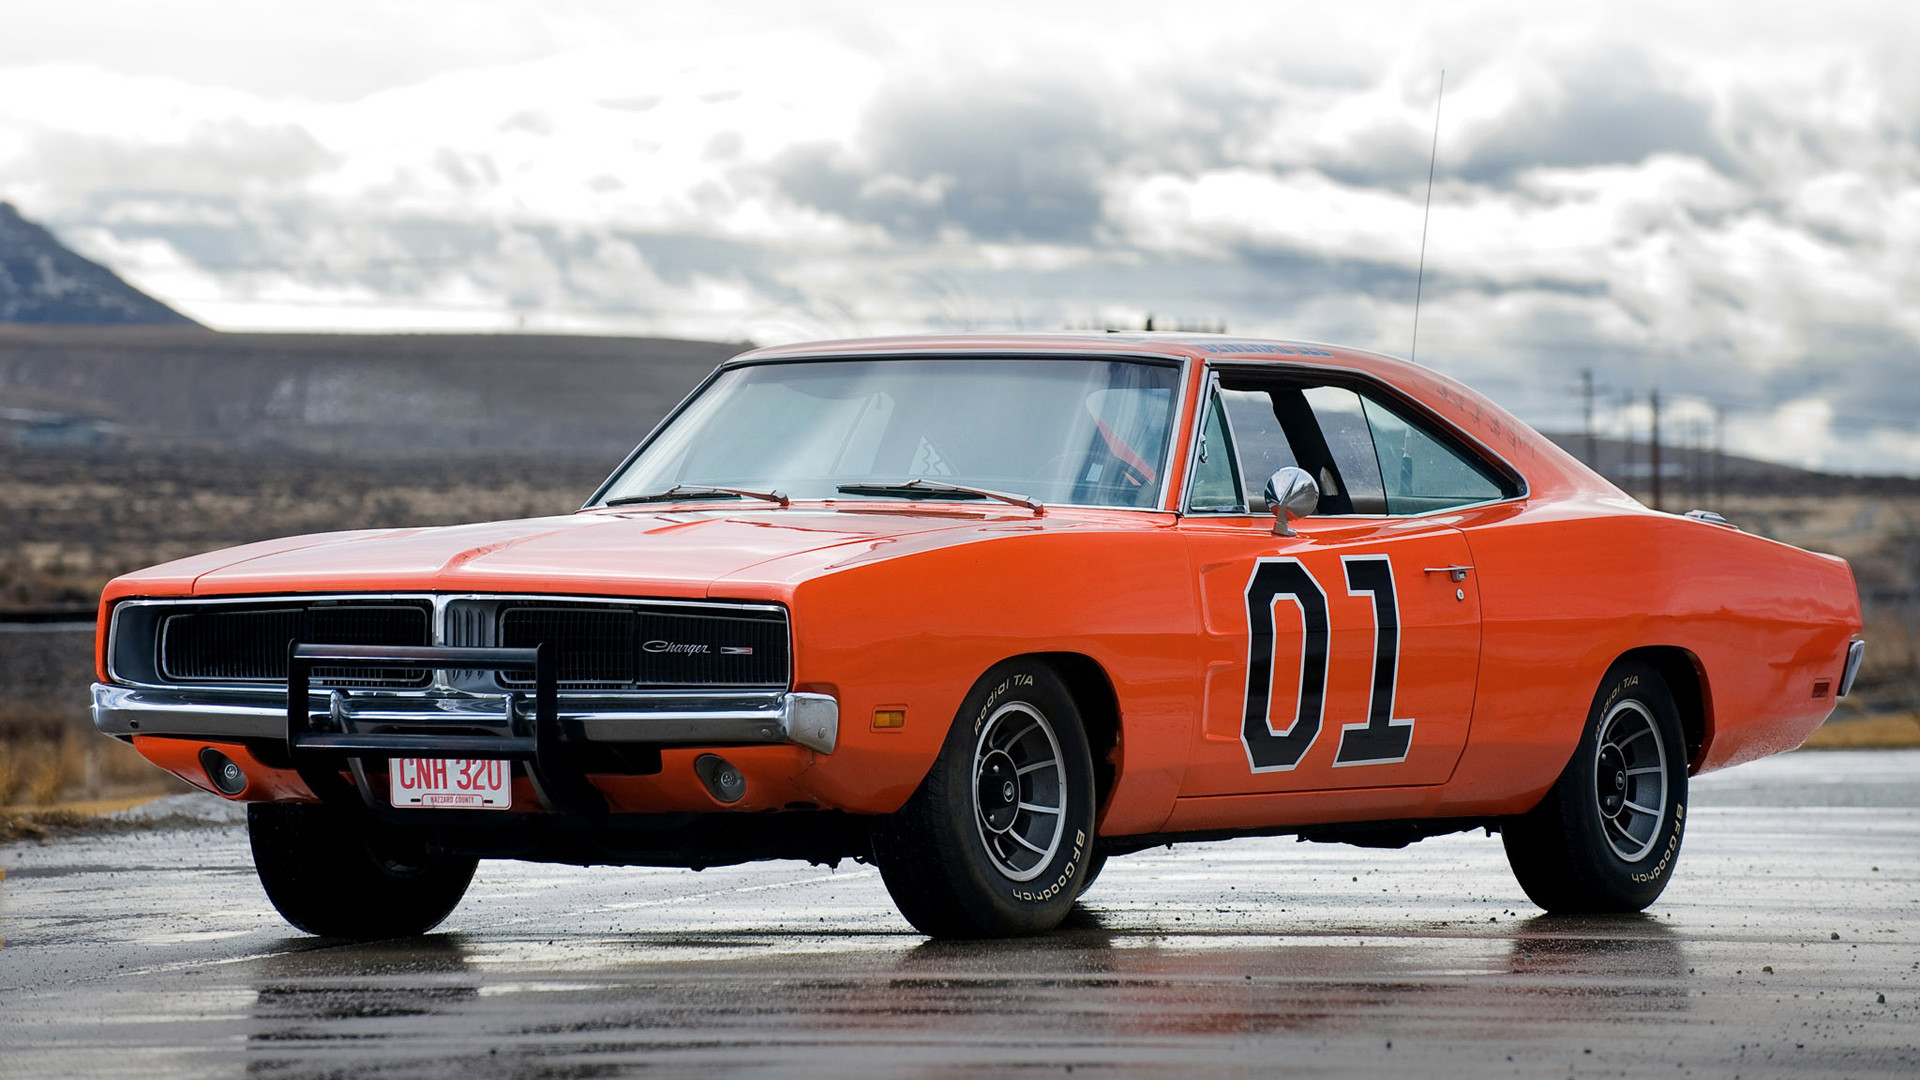 1920x1080 1969 Dodge Charger General Lee picture.